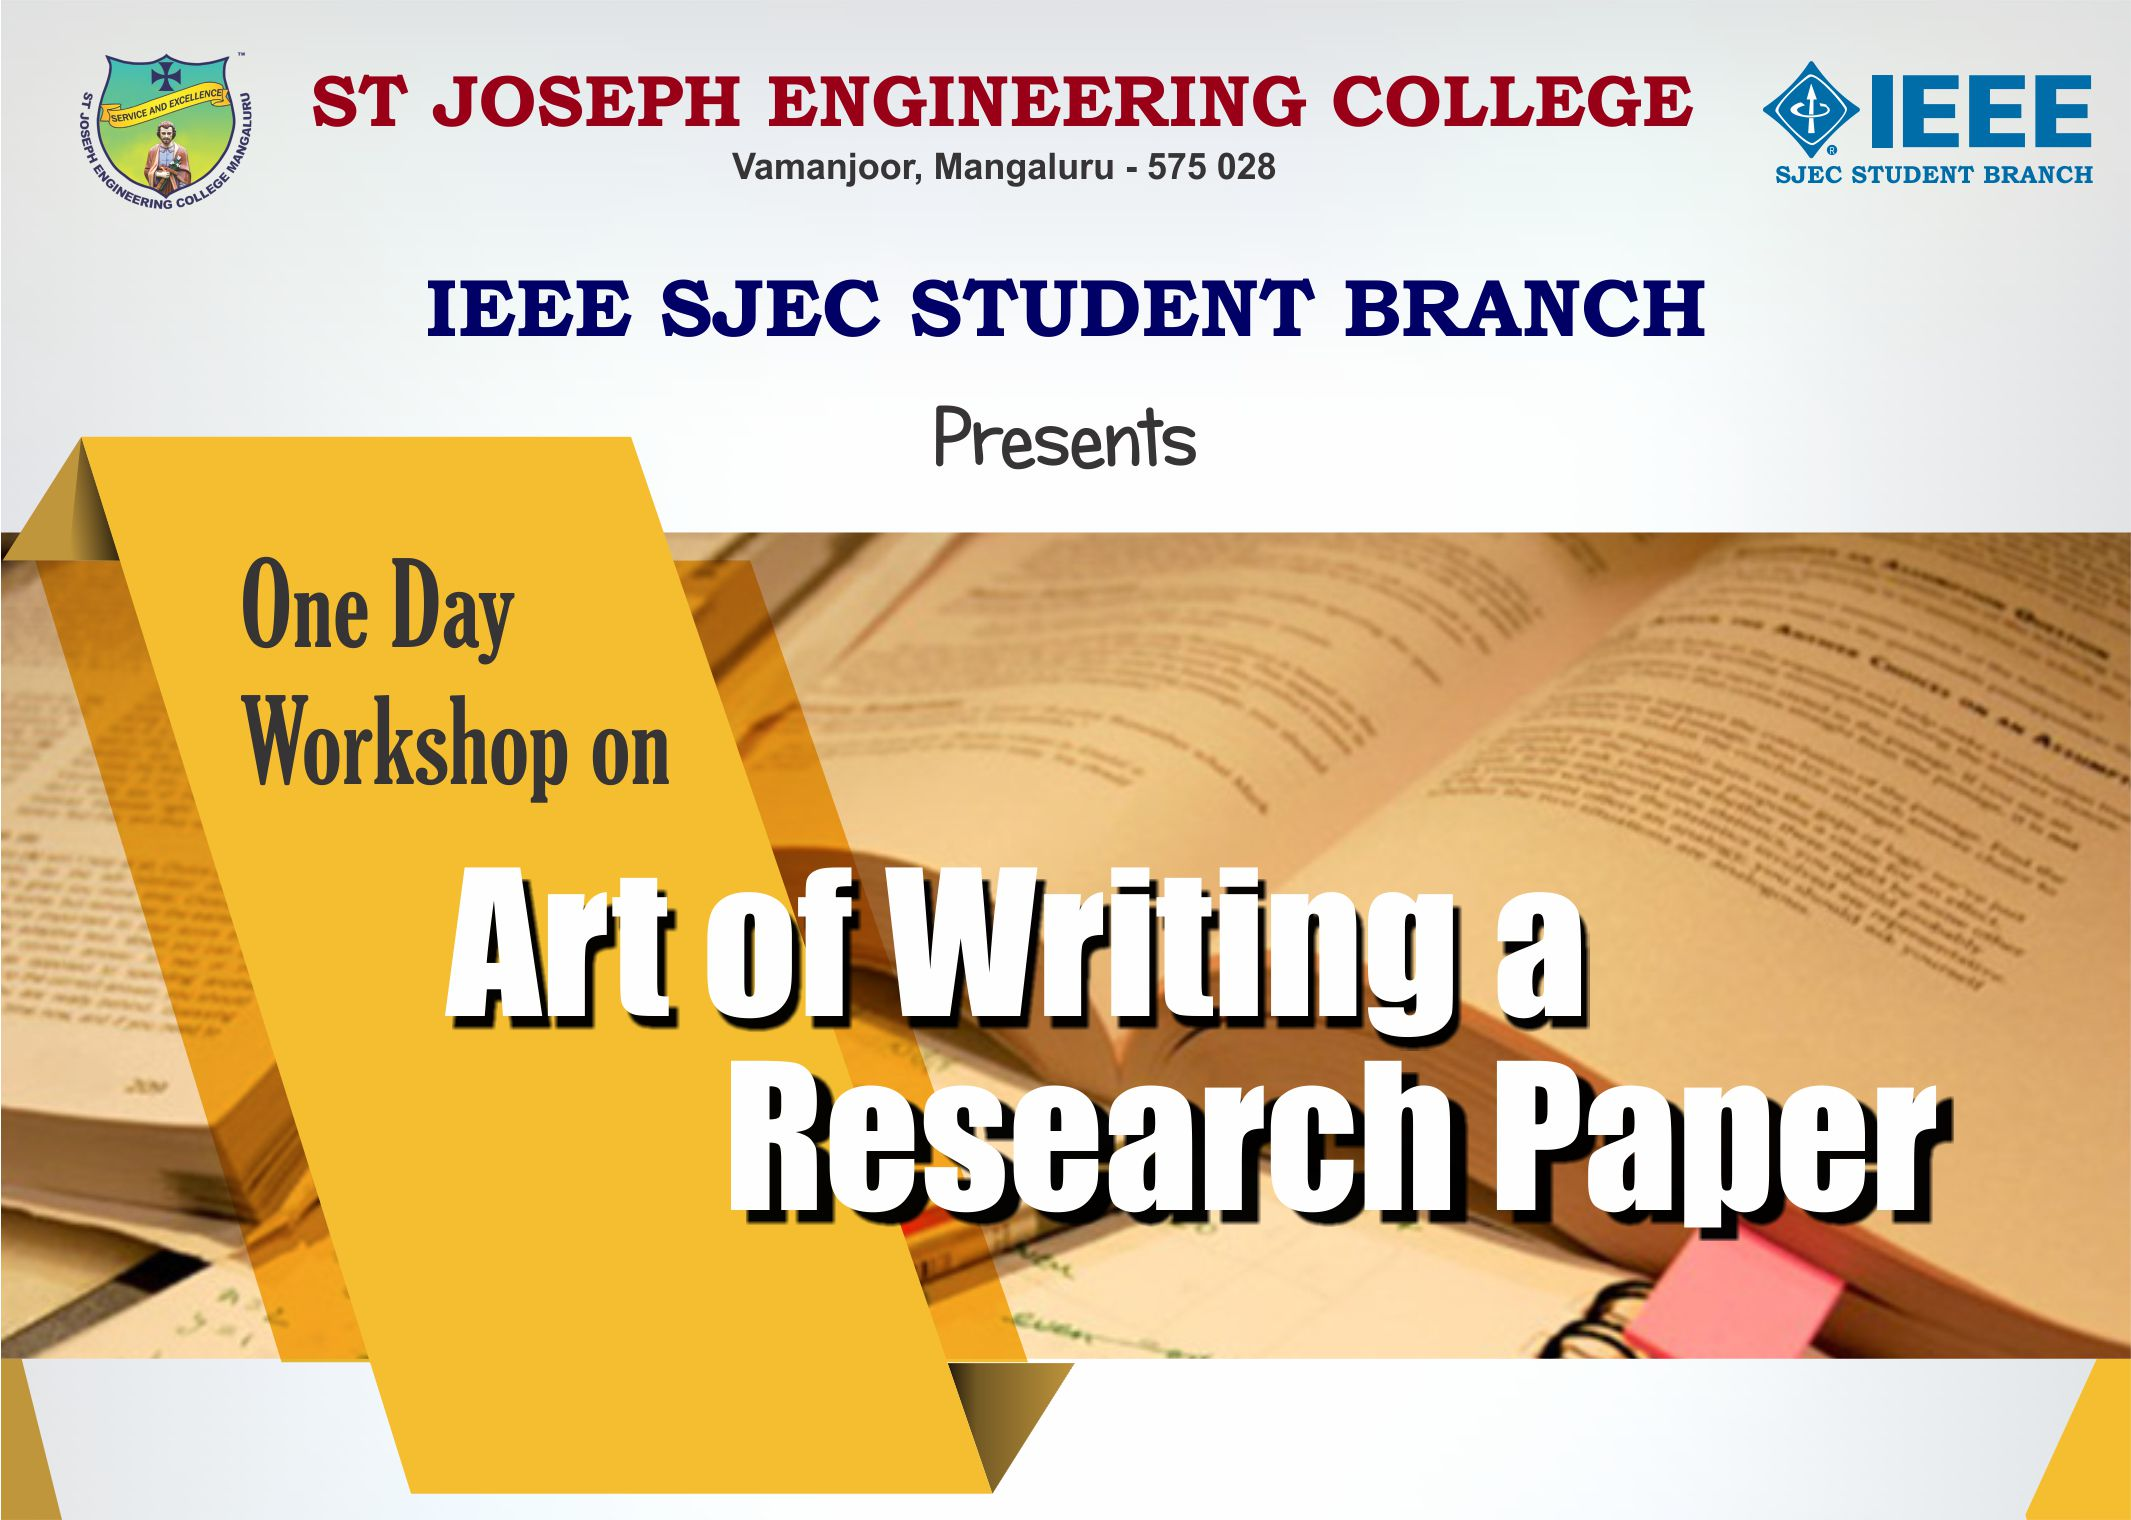 005 Workshop Banner Researchs Writing Fascinating Research Papers Best Paper Services In India Benefits Style Full